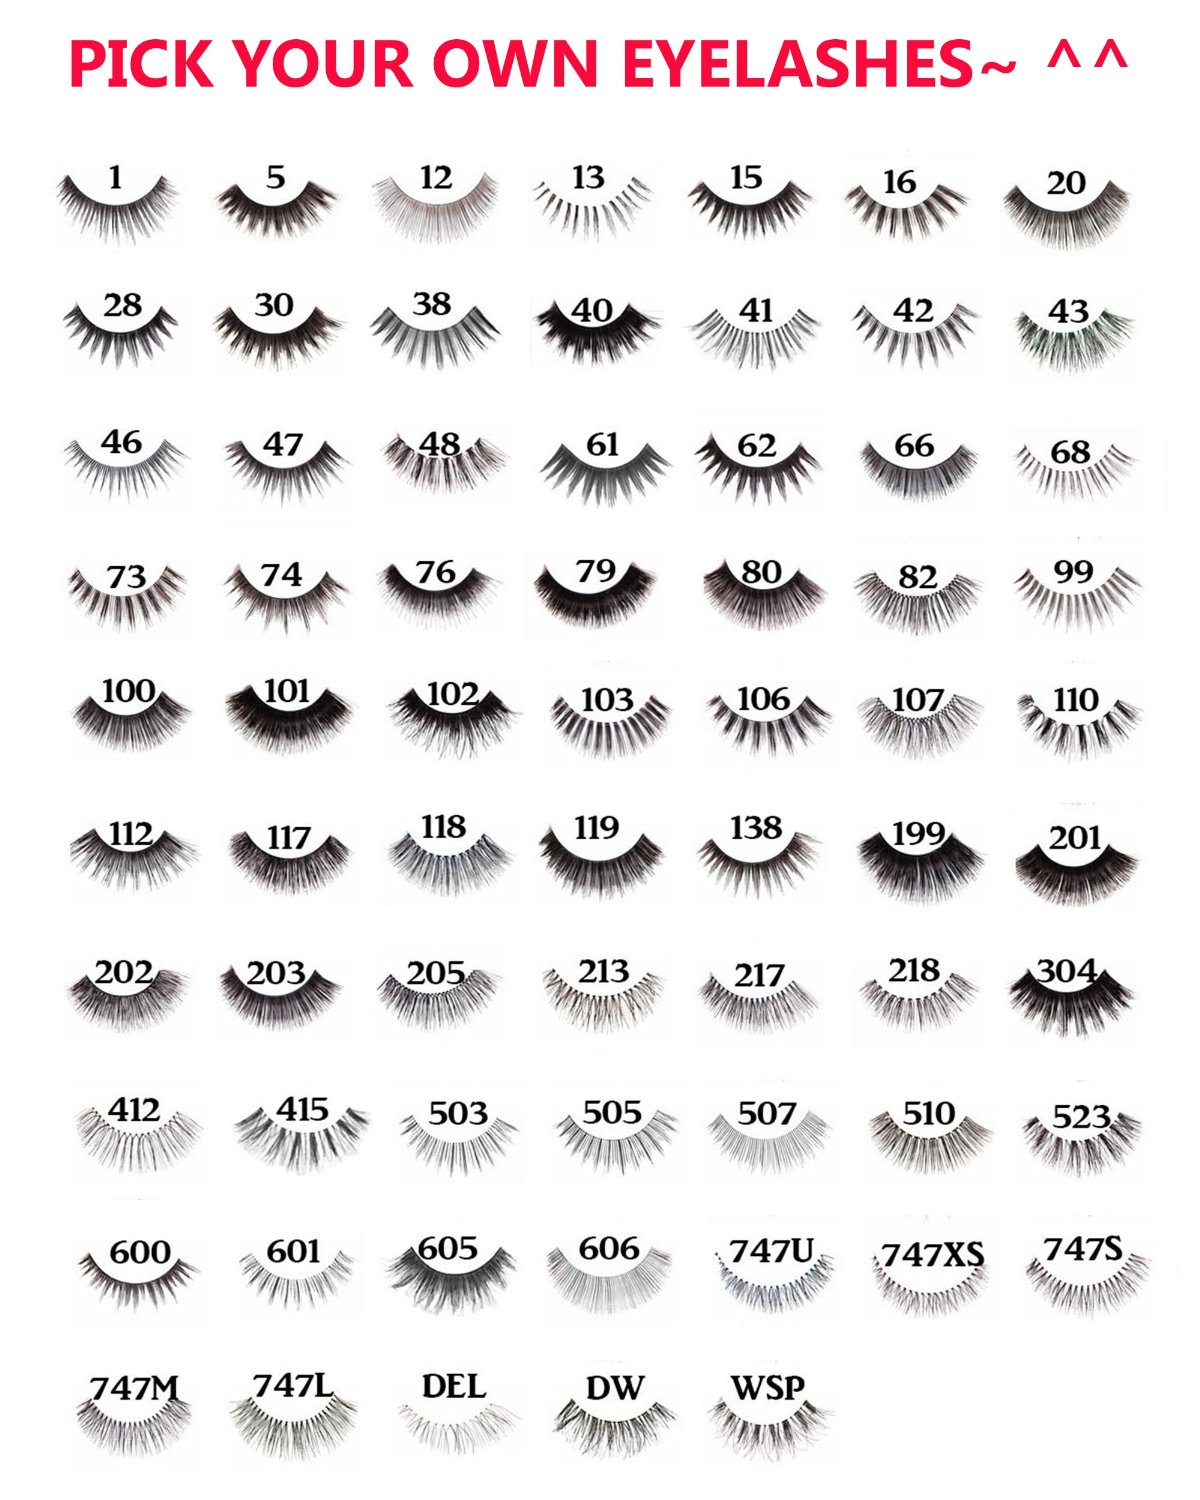 "10 Pairs of Red Cherry 100% Human Hair False Eyelashes ""Pick Your Choice of any 10 Pairs"" - Mighty Gadget"